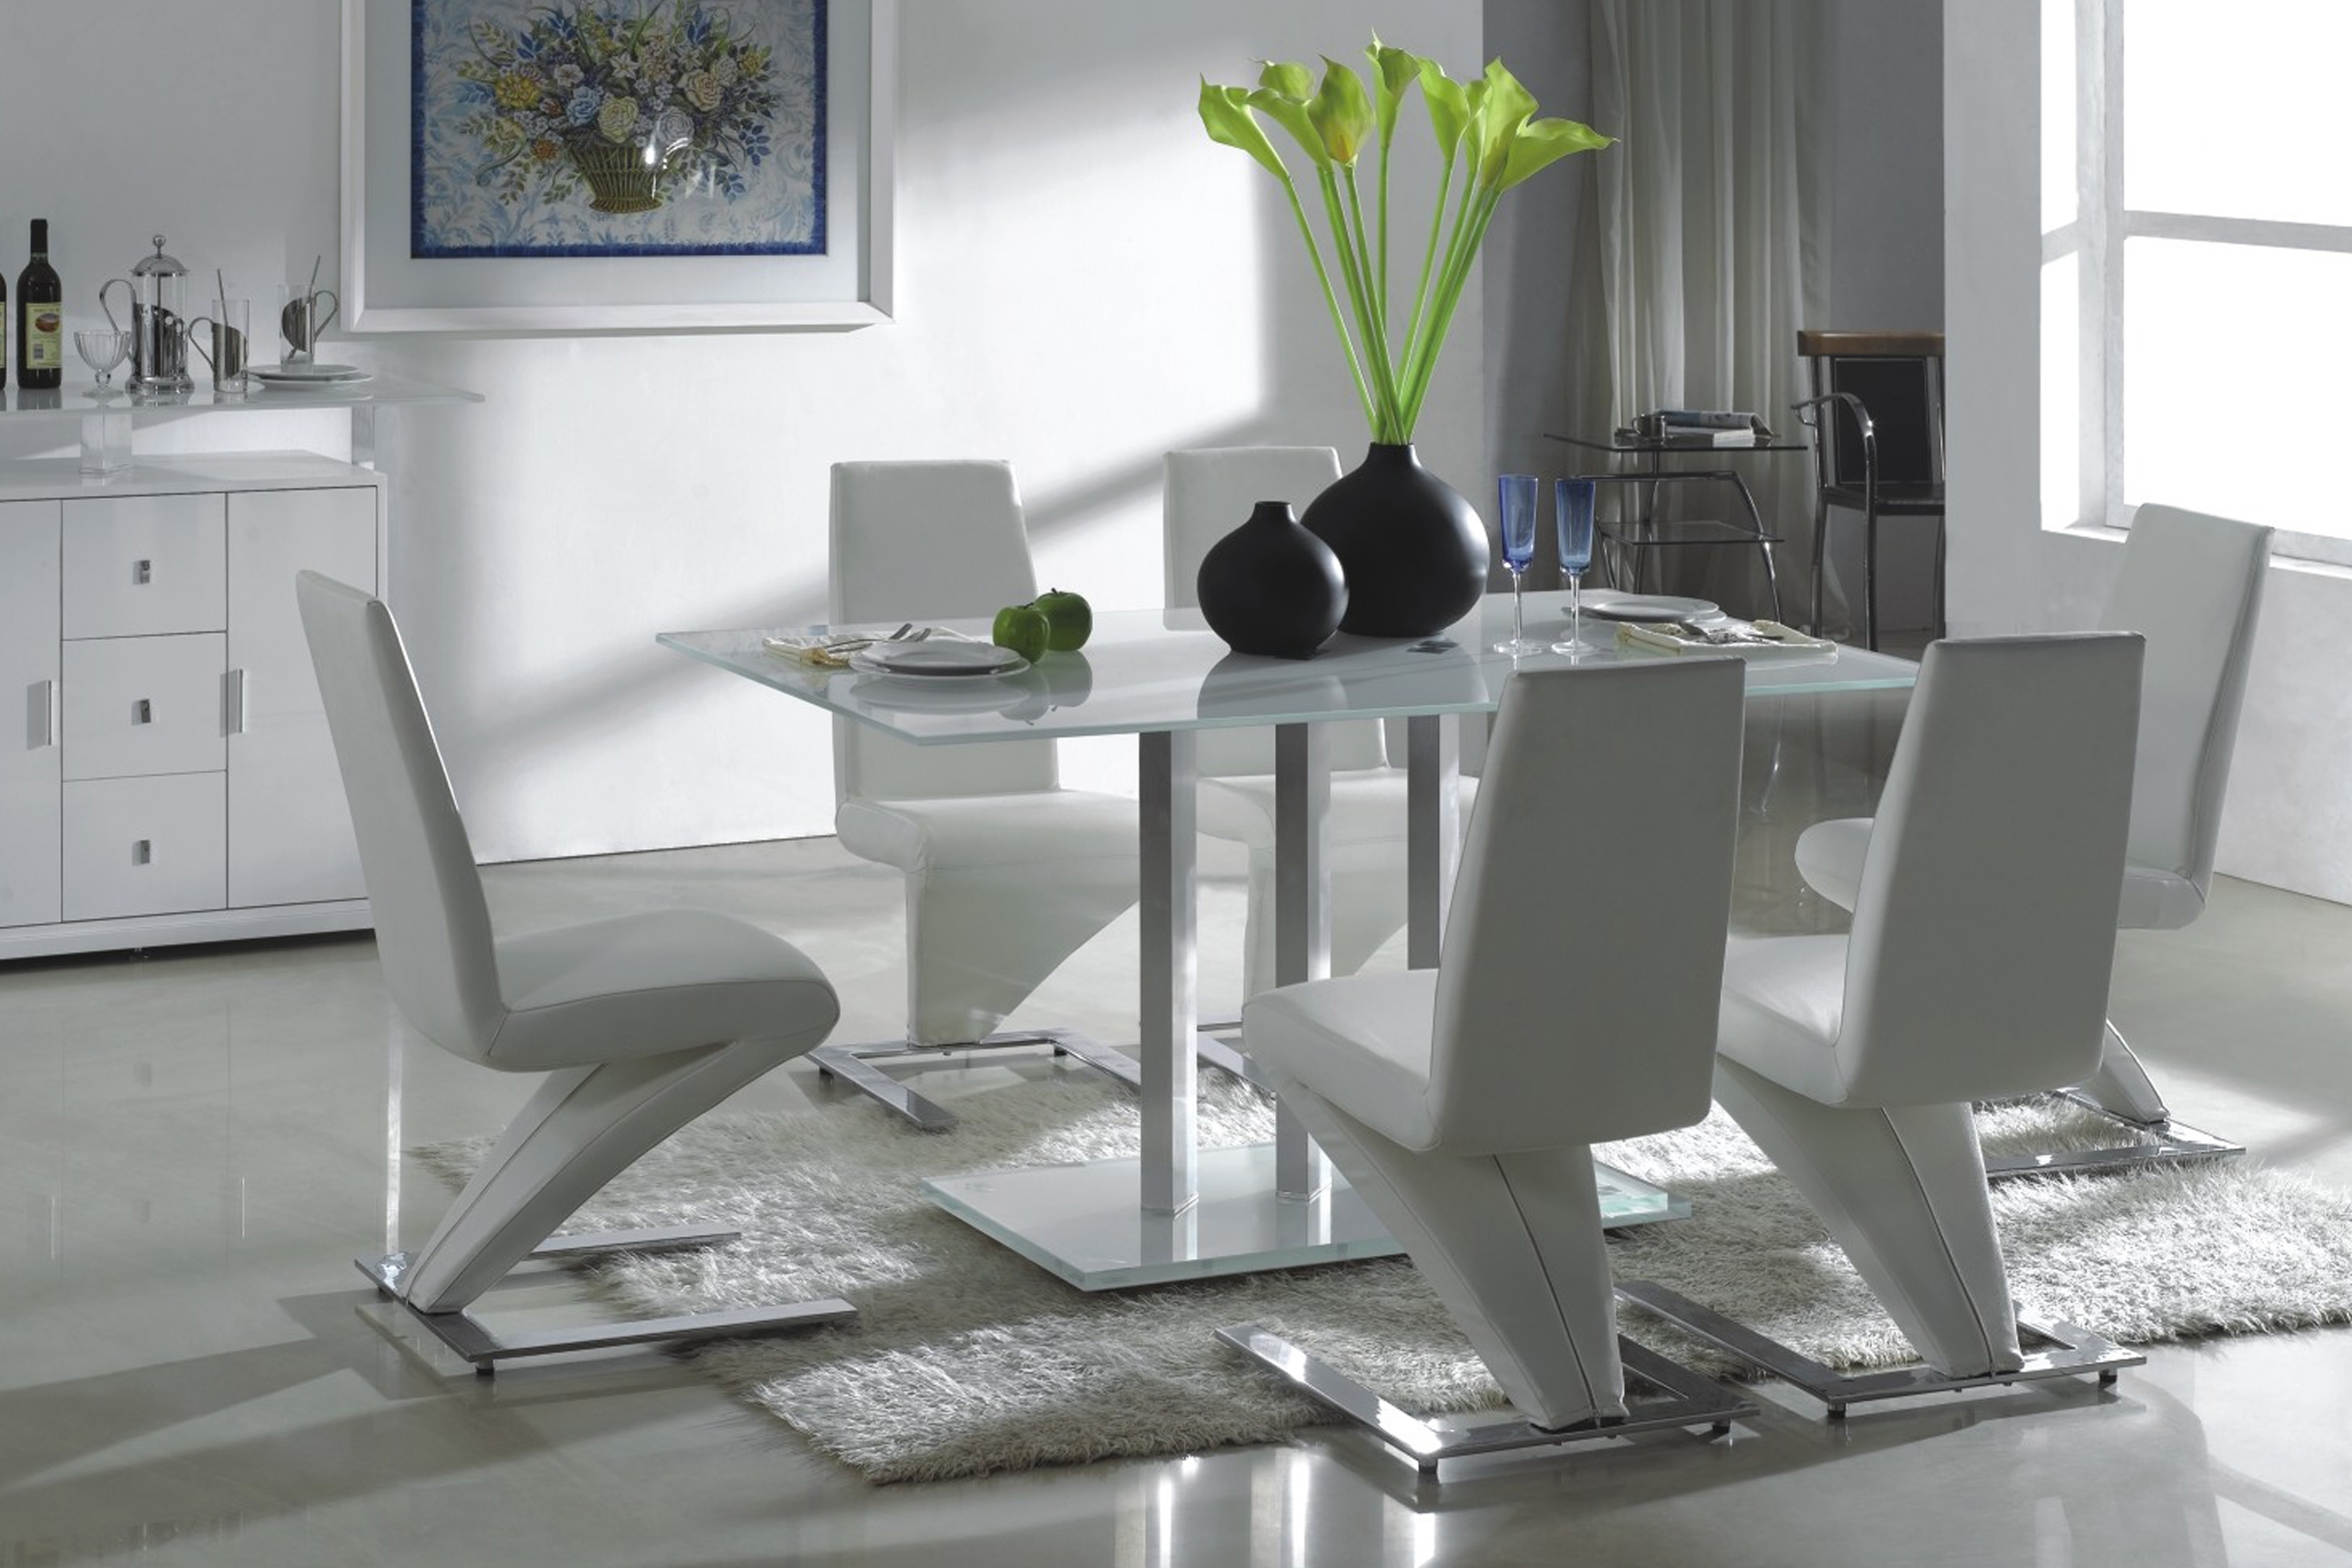 Simple Dining Room Glass Top Table Sets – Esescatrina Within Most Recently Released Glass Dining Tables And Chairs (View 22 of 25)